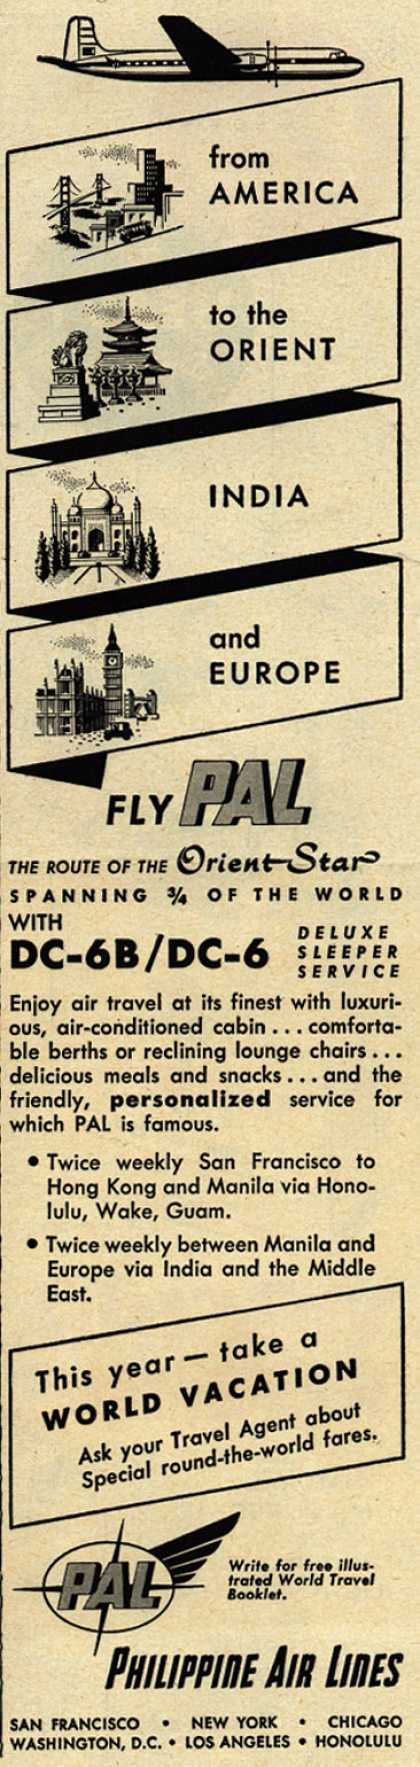 Philippine Air Line's Orient Star – from America to the Orient India and Europe (1953)